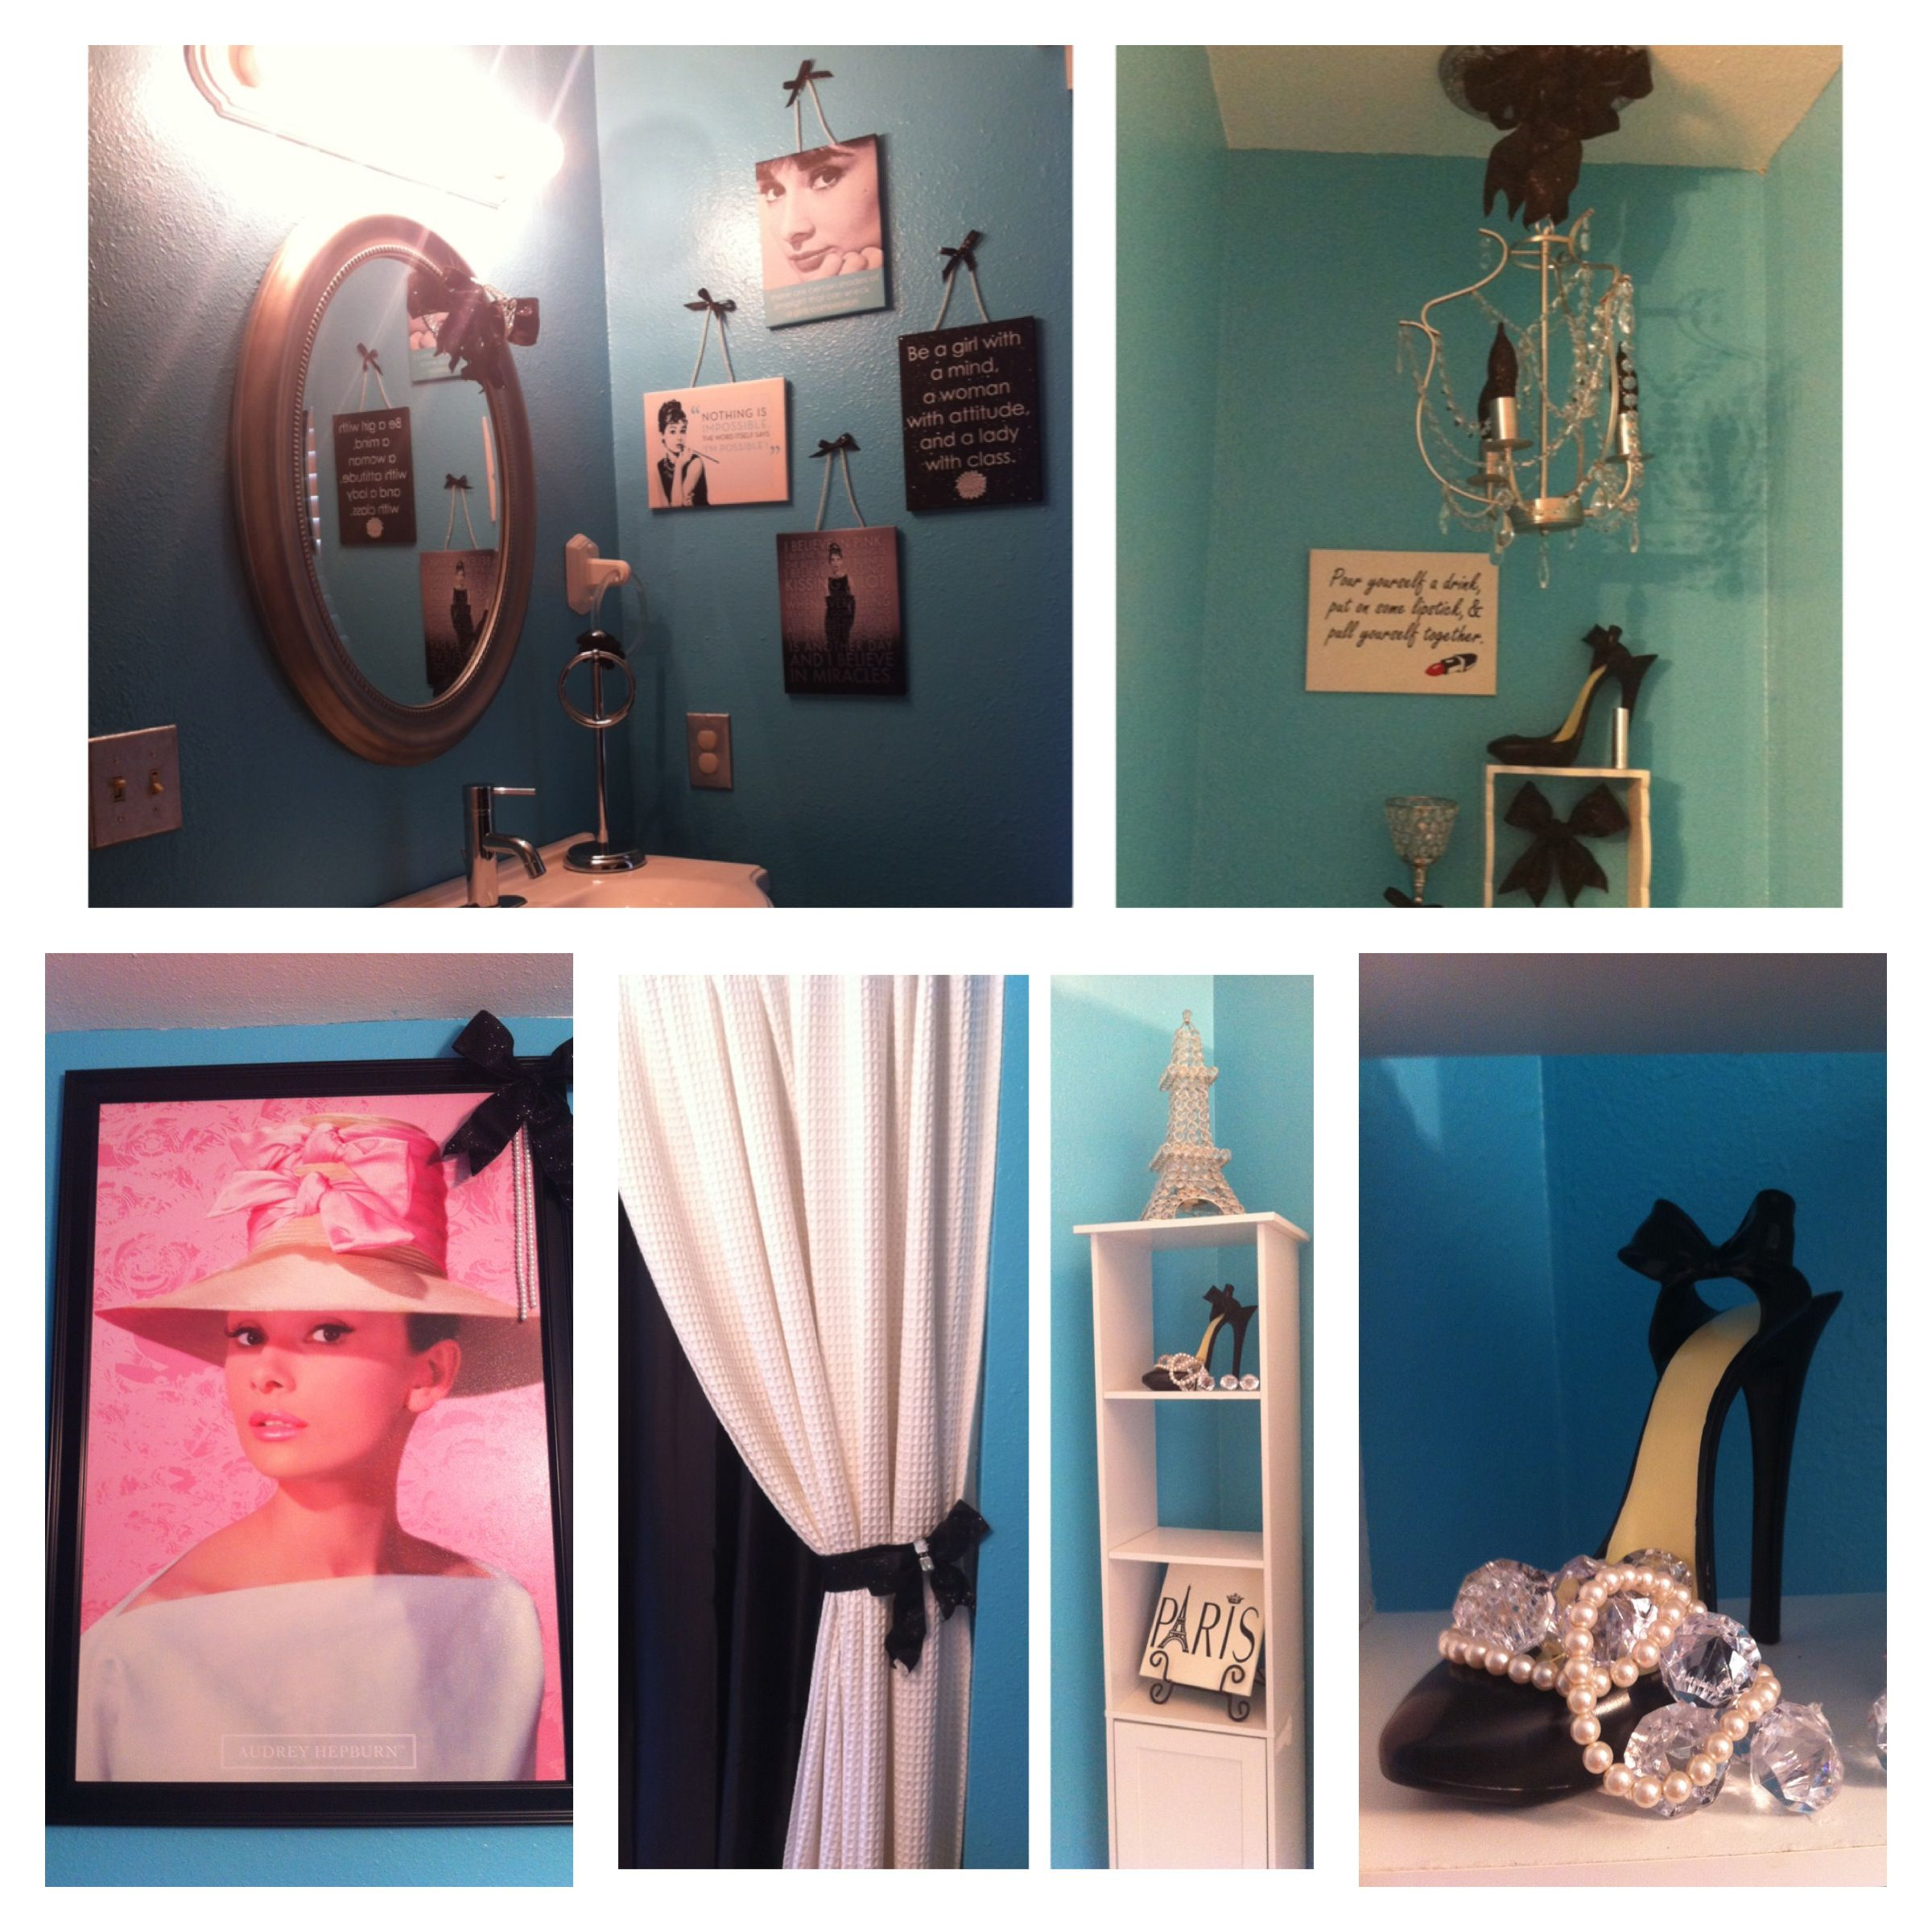 Audrey Hepburn Tiffany Blue Bathroom Decor